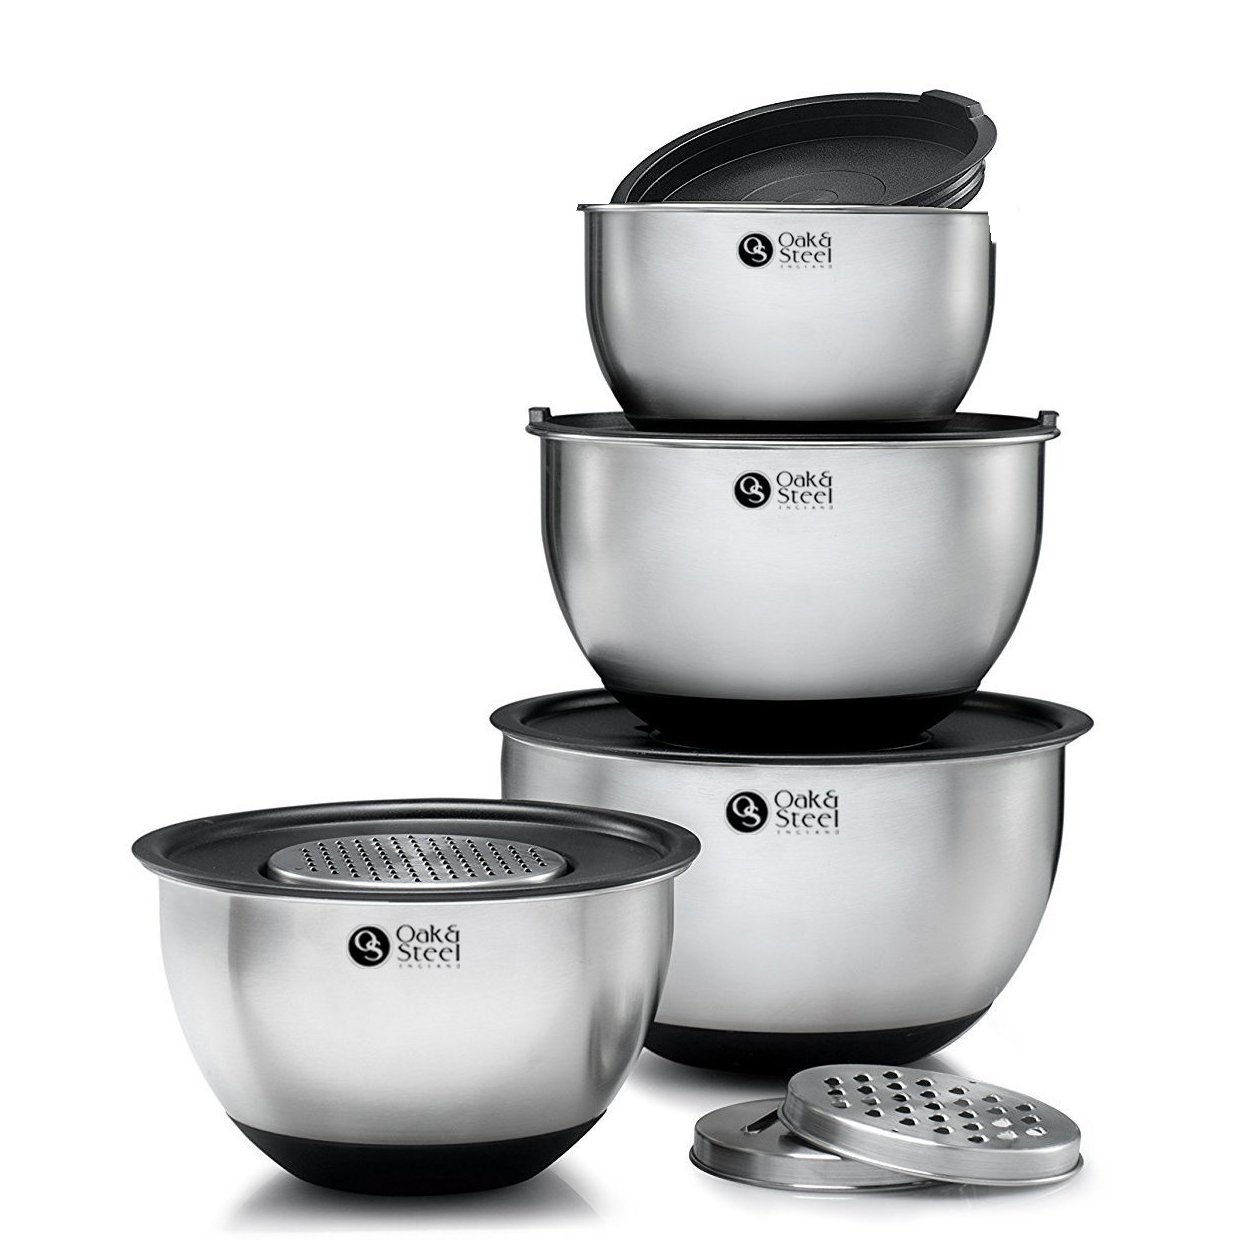 11 Piece Stainless Steel Mixing Bowl Set - 4 Sizes including Extra Large - Nesting Design with Rubber Grip base - 4 Sealable Lids & 3 Grating attachments OS Oak & Steel ENGLAND